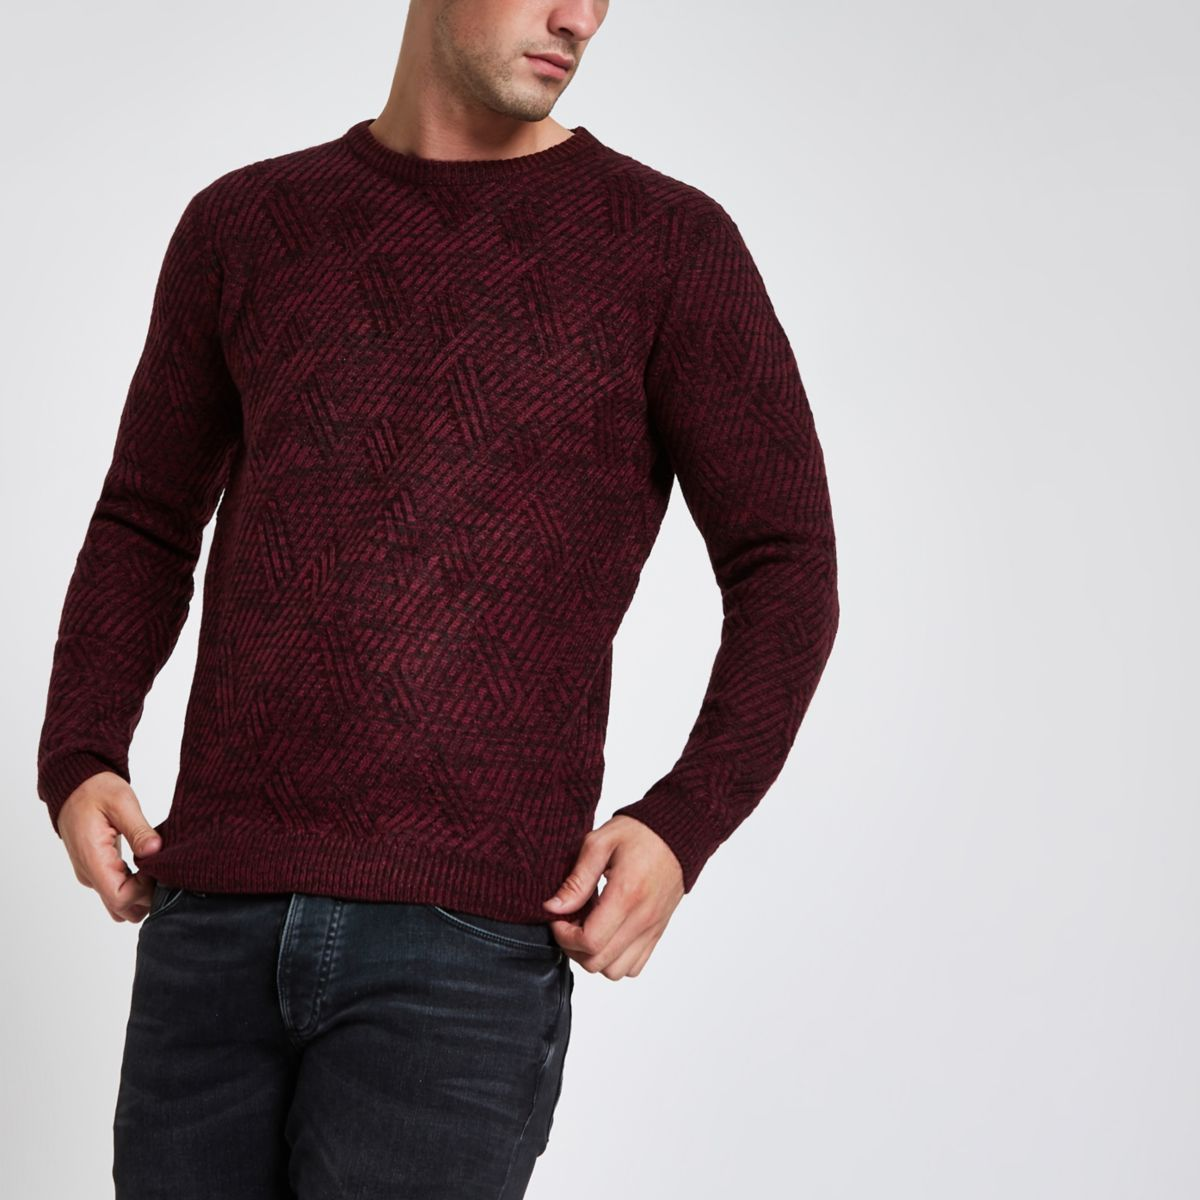 Bellfield burgundy textured crew neck sweater